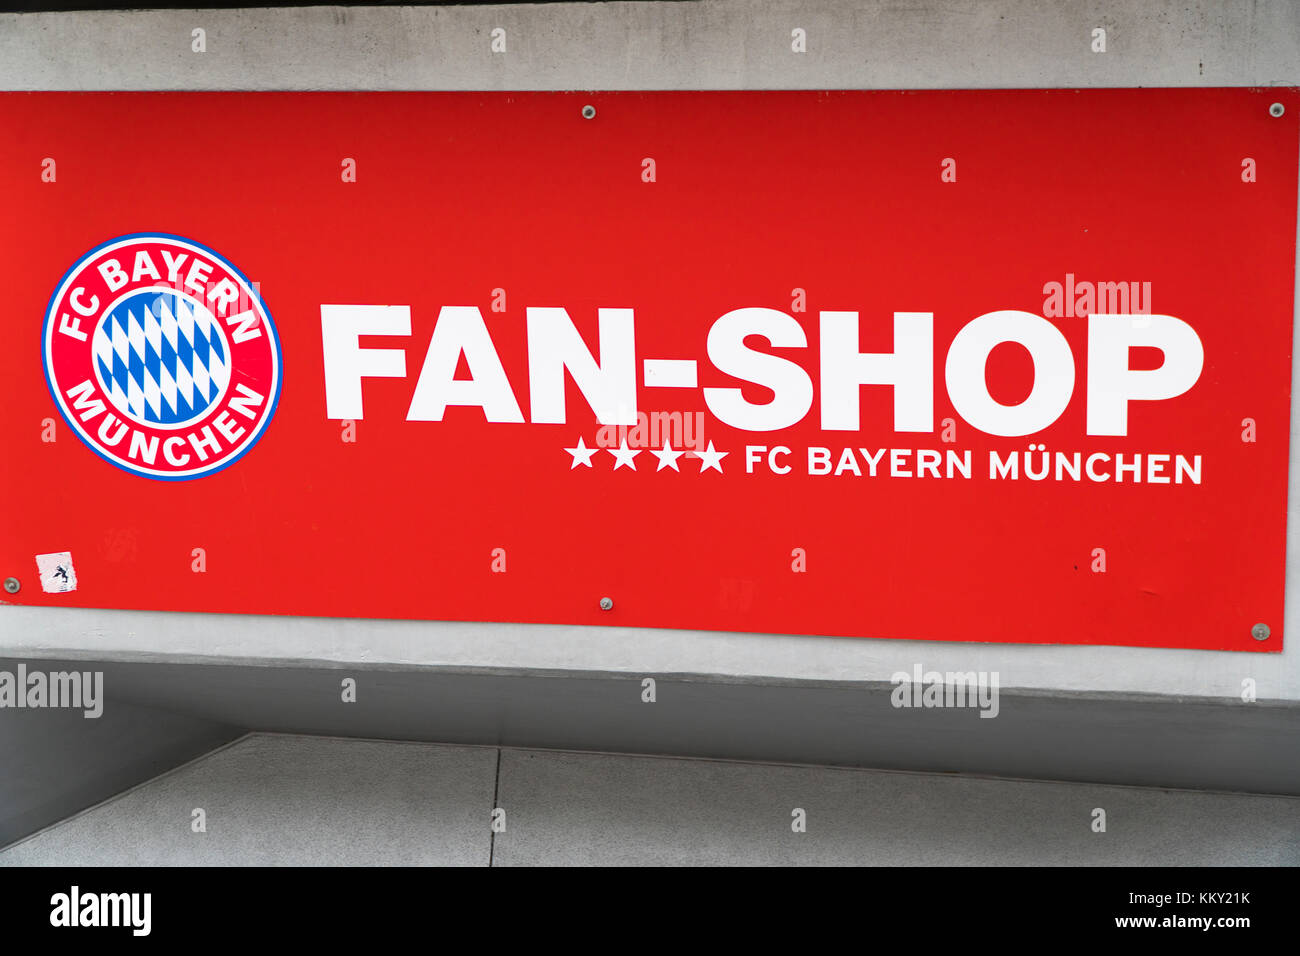 fc bayern m nchen stock photos fc bayern m nchen stock images alamy. Black Bedroom Furniture Sets. Home Design Ideas